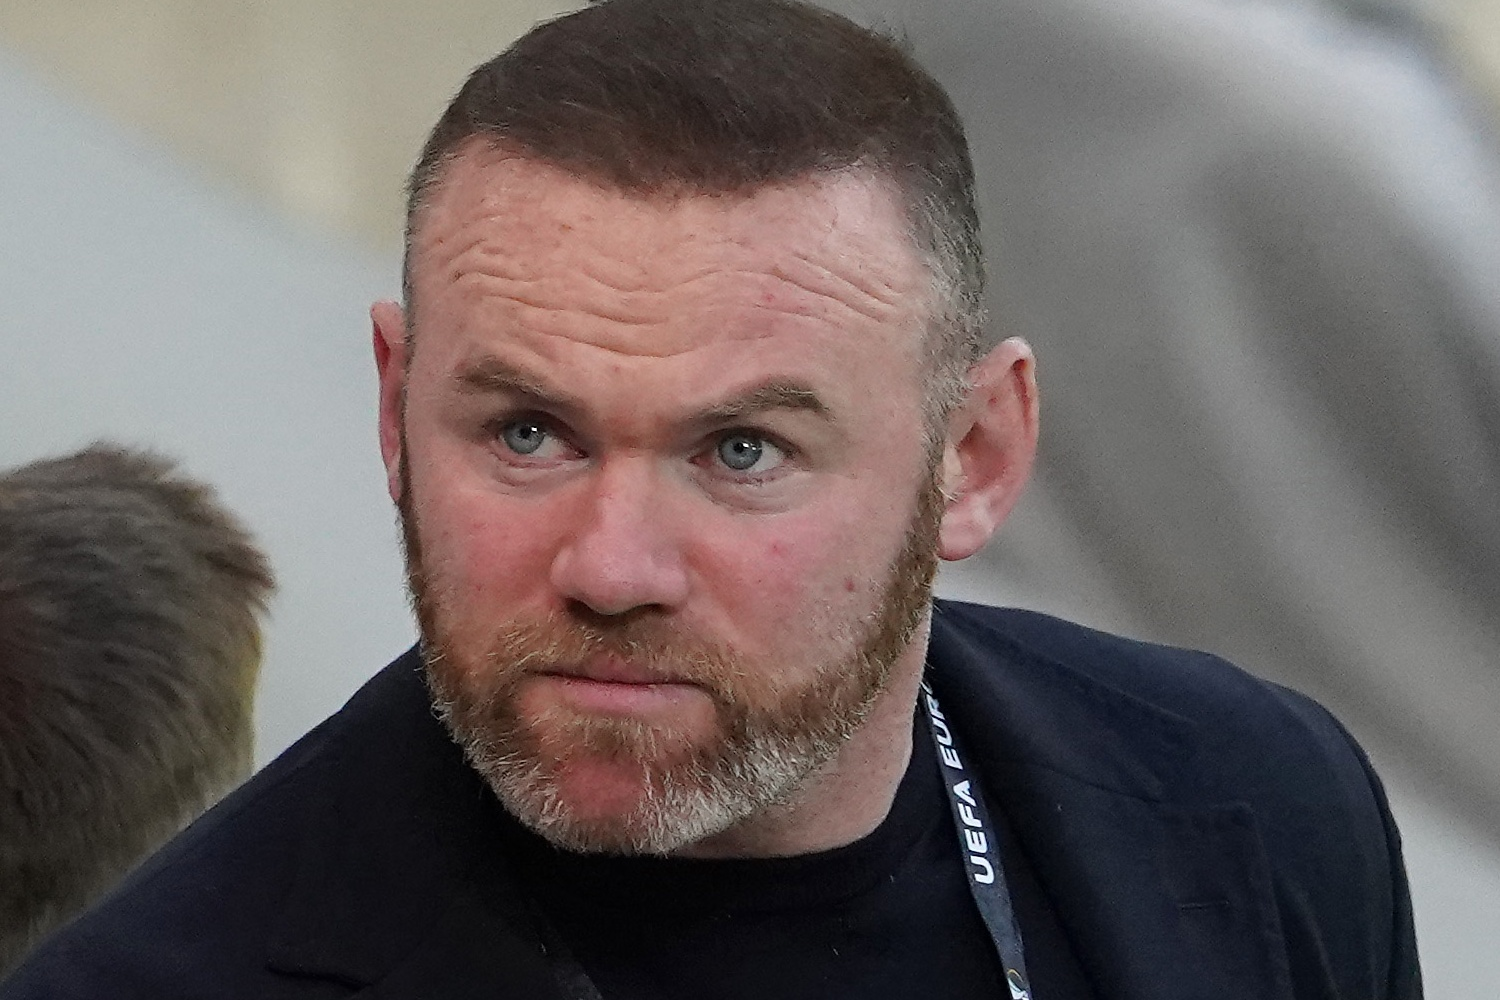 Wayne Rooney reports photos shared online to Greater Manchester Police, The Manc